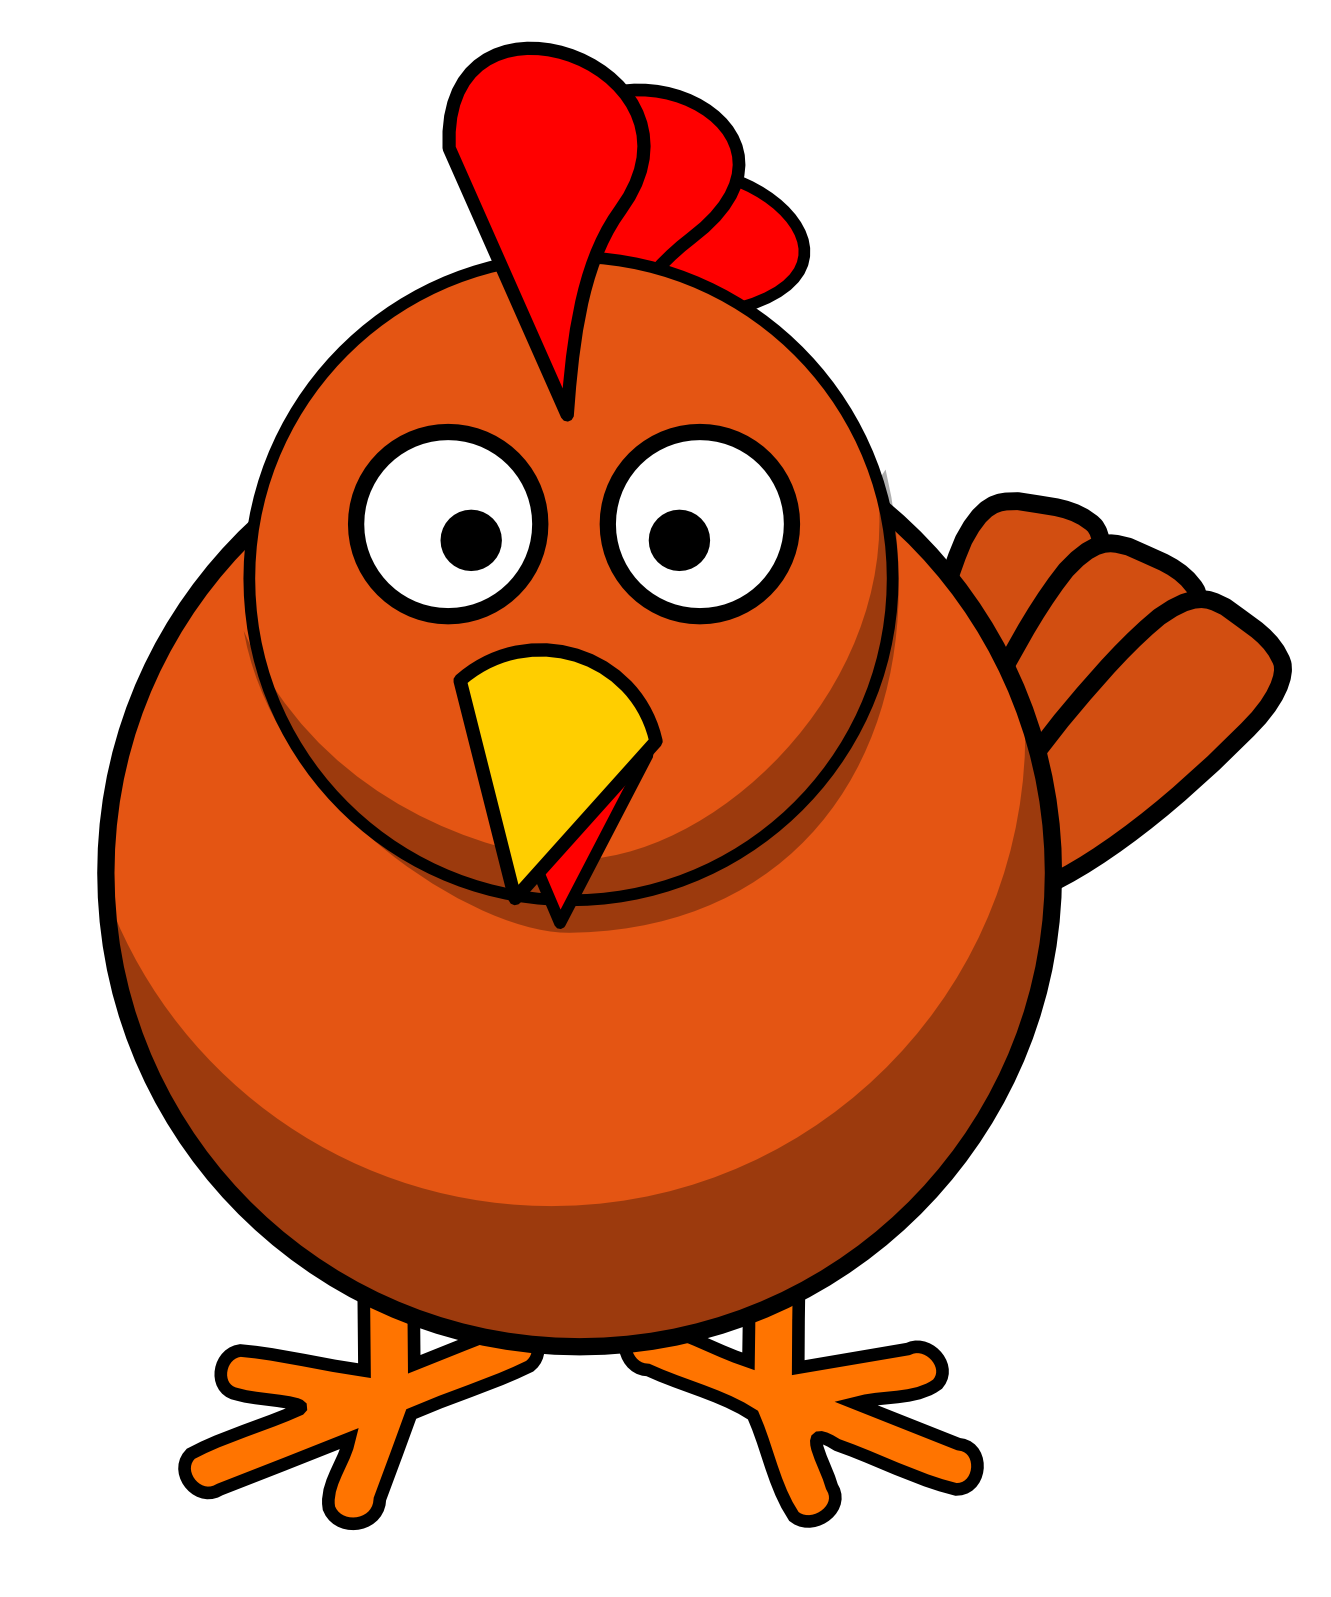 Nest clipart chicken. Free panda images chickenclipart